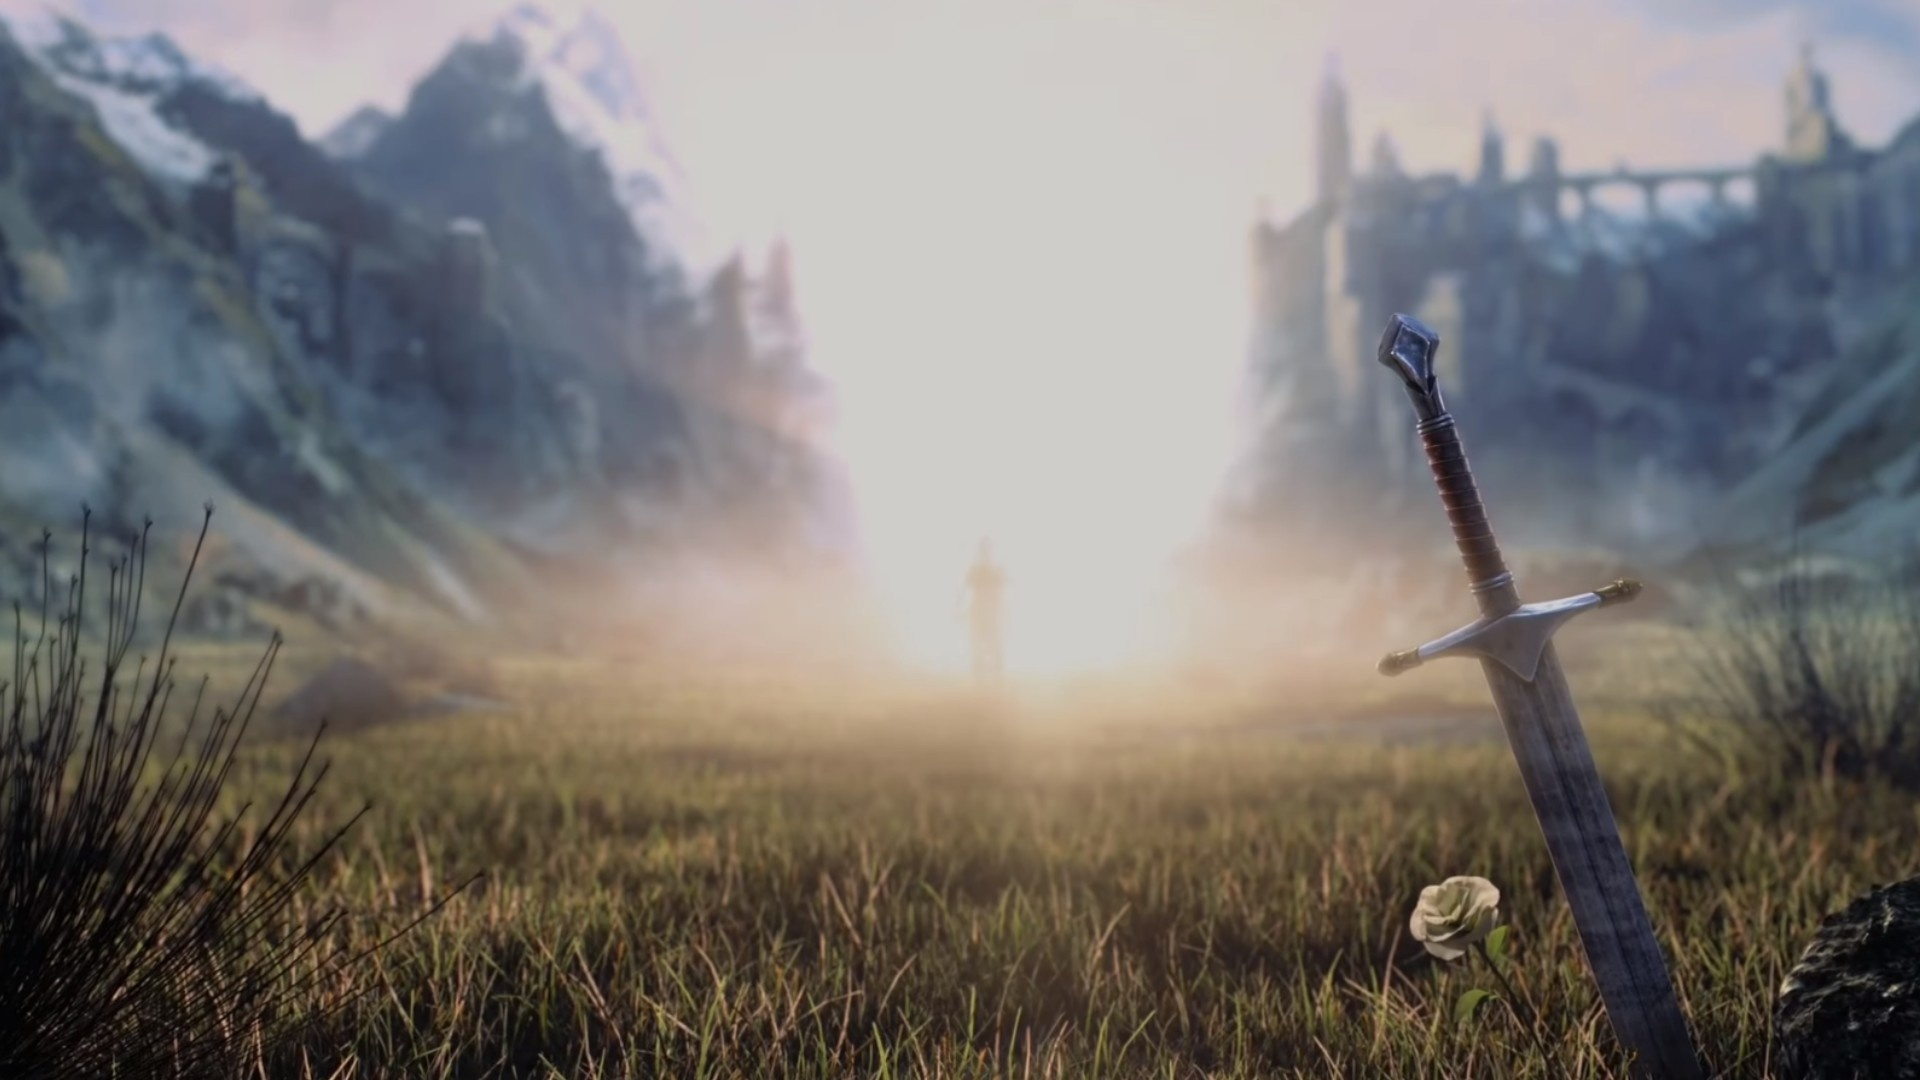 Wallpaper Middle-earth: shadow of war, landscape, sword, video game